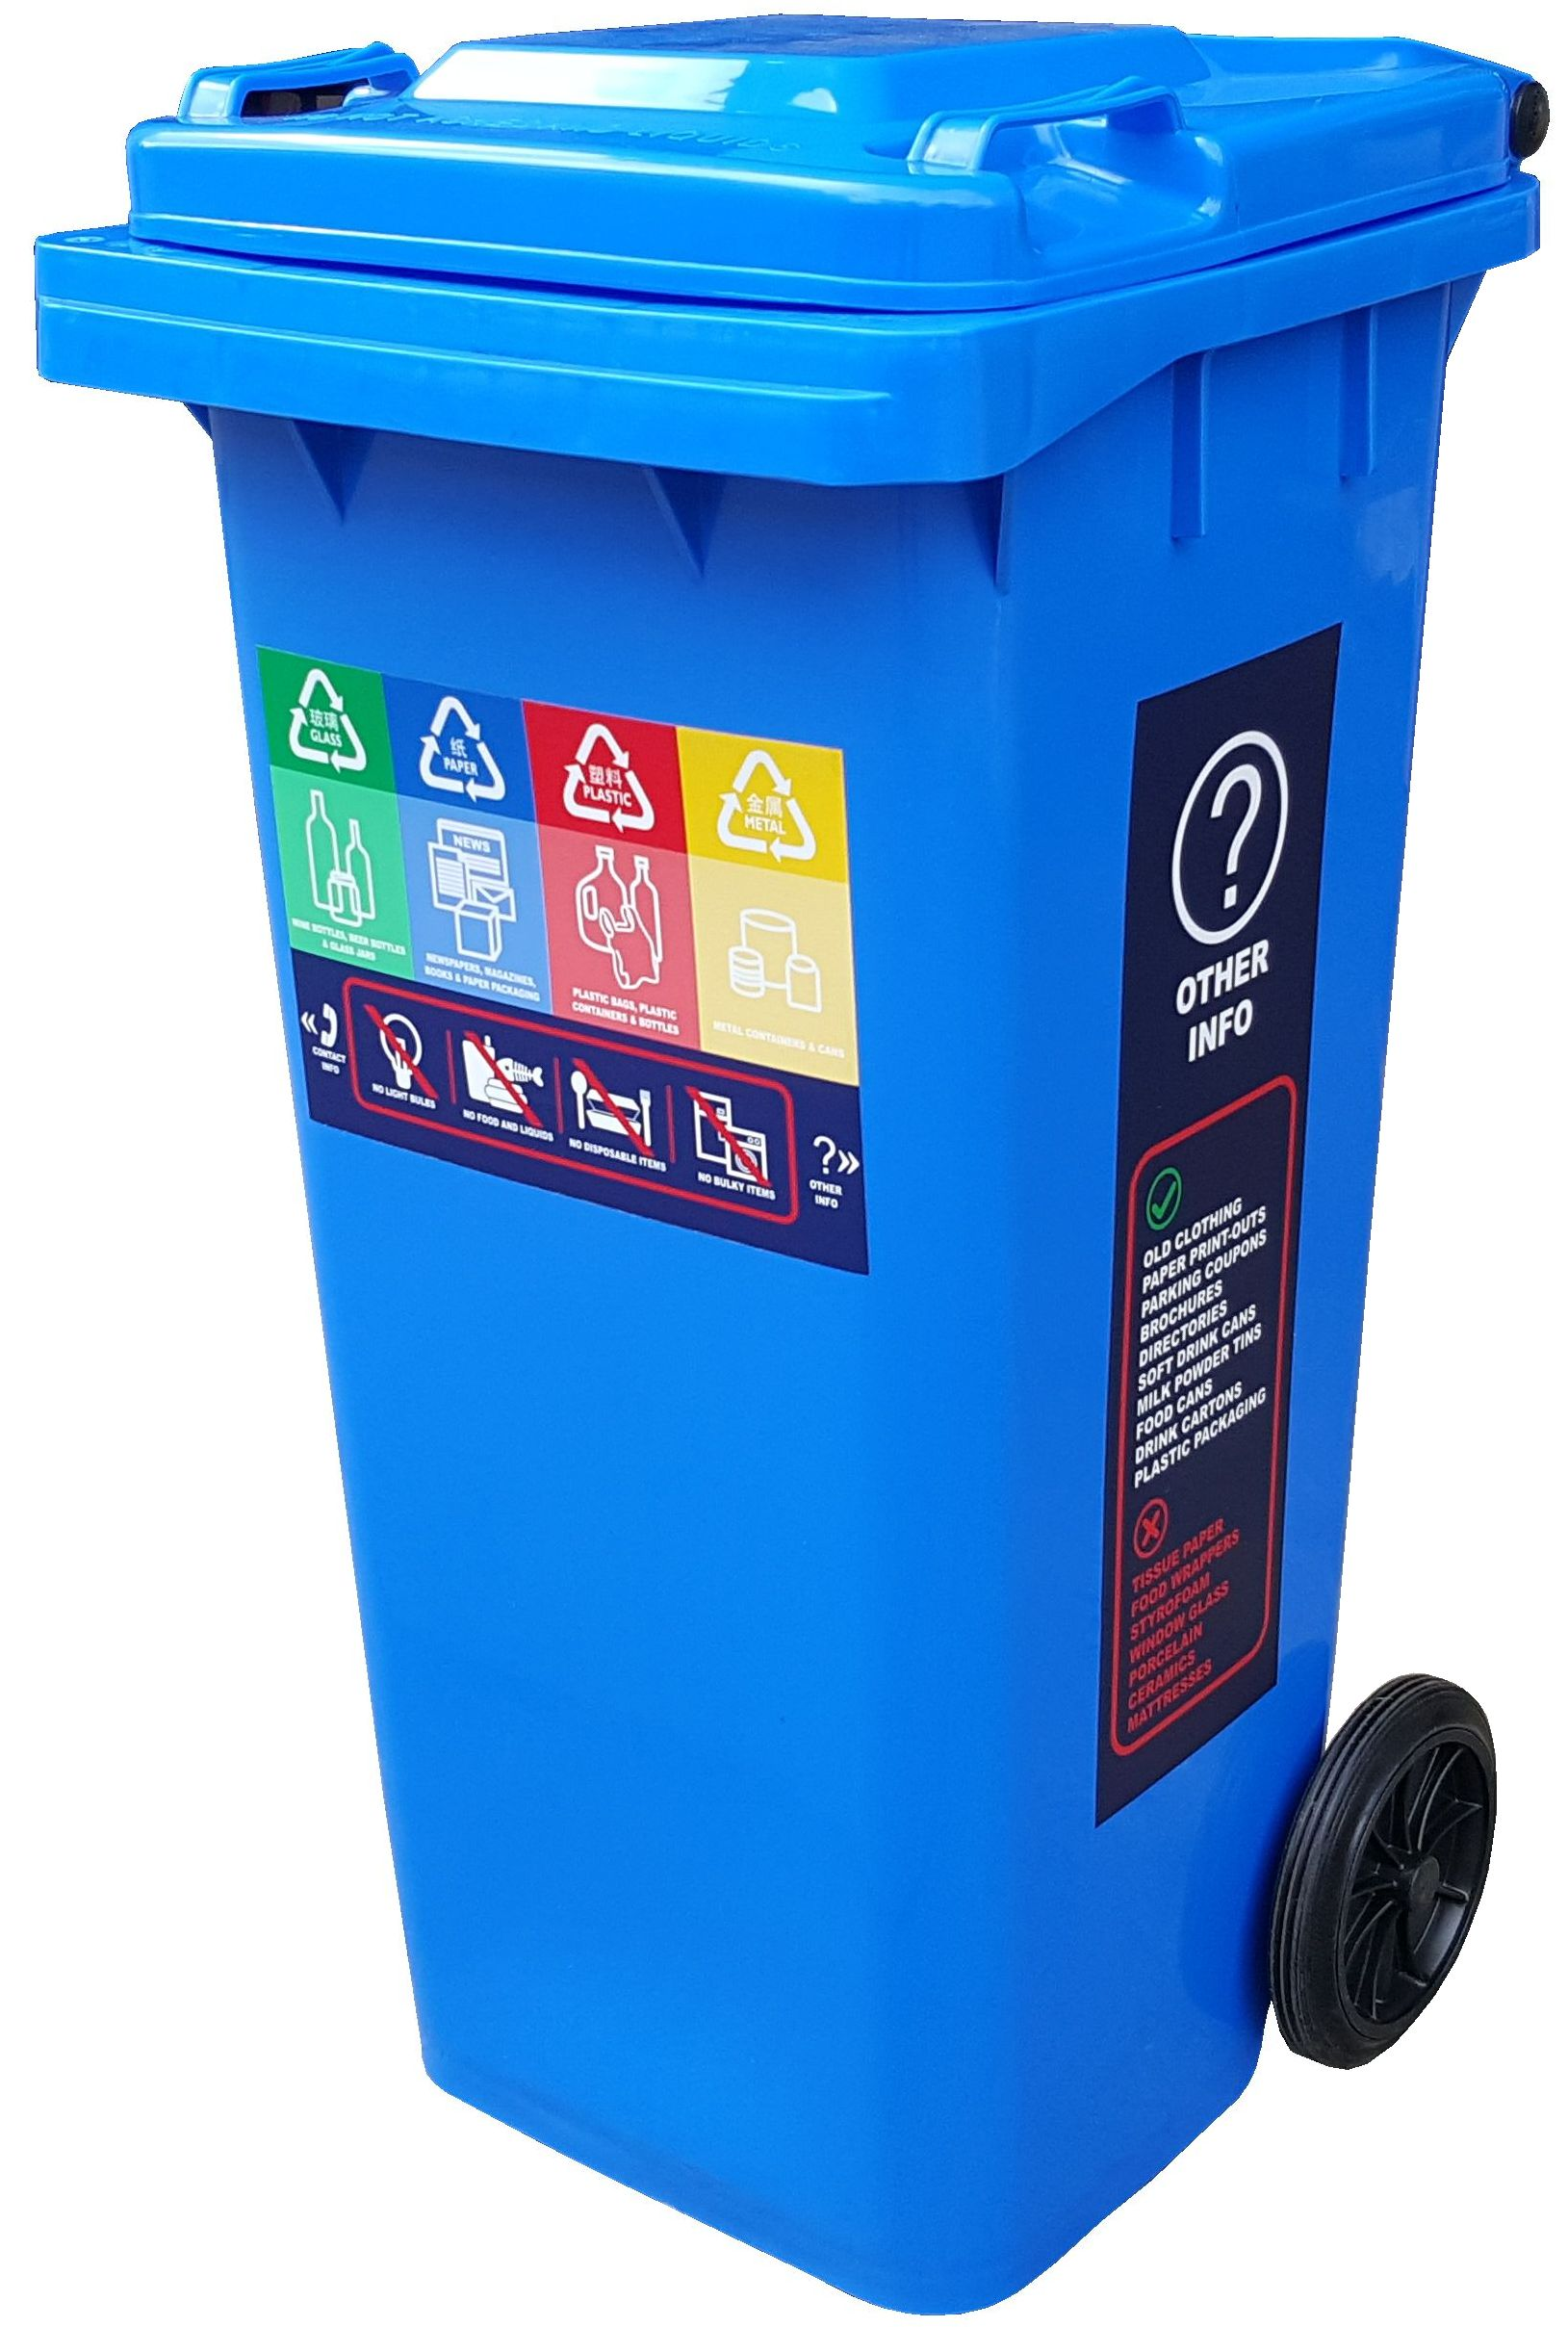 120 Litres 2 Wheels All-in-one Blue Recycling Bin